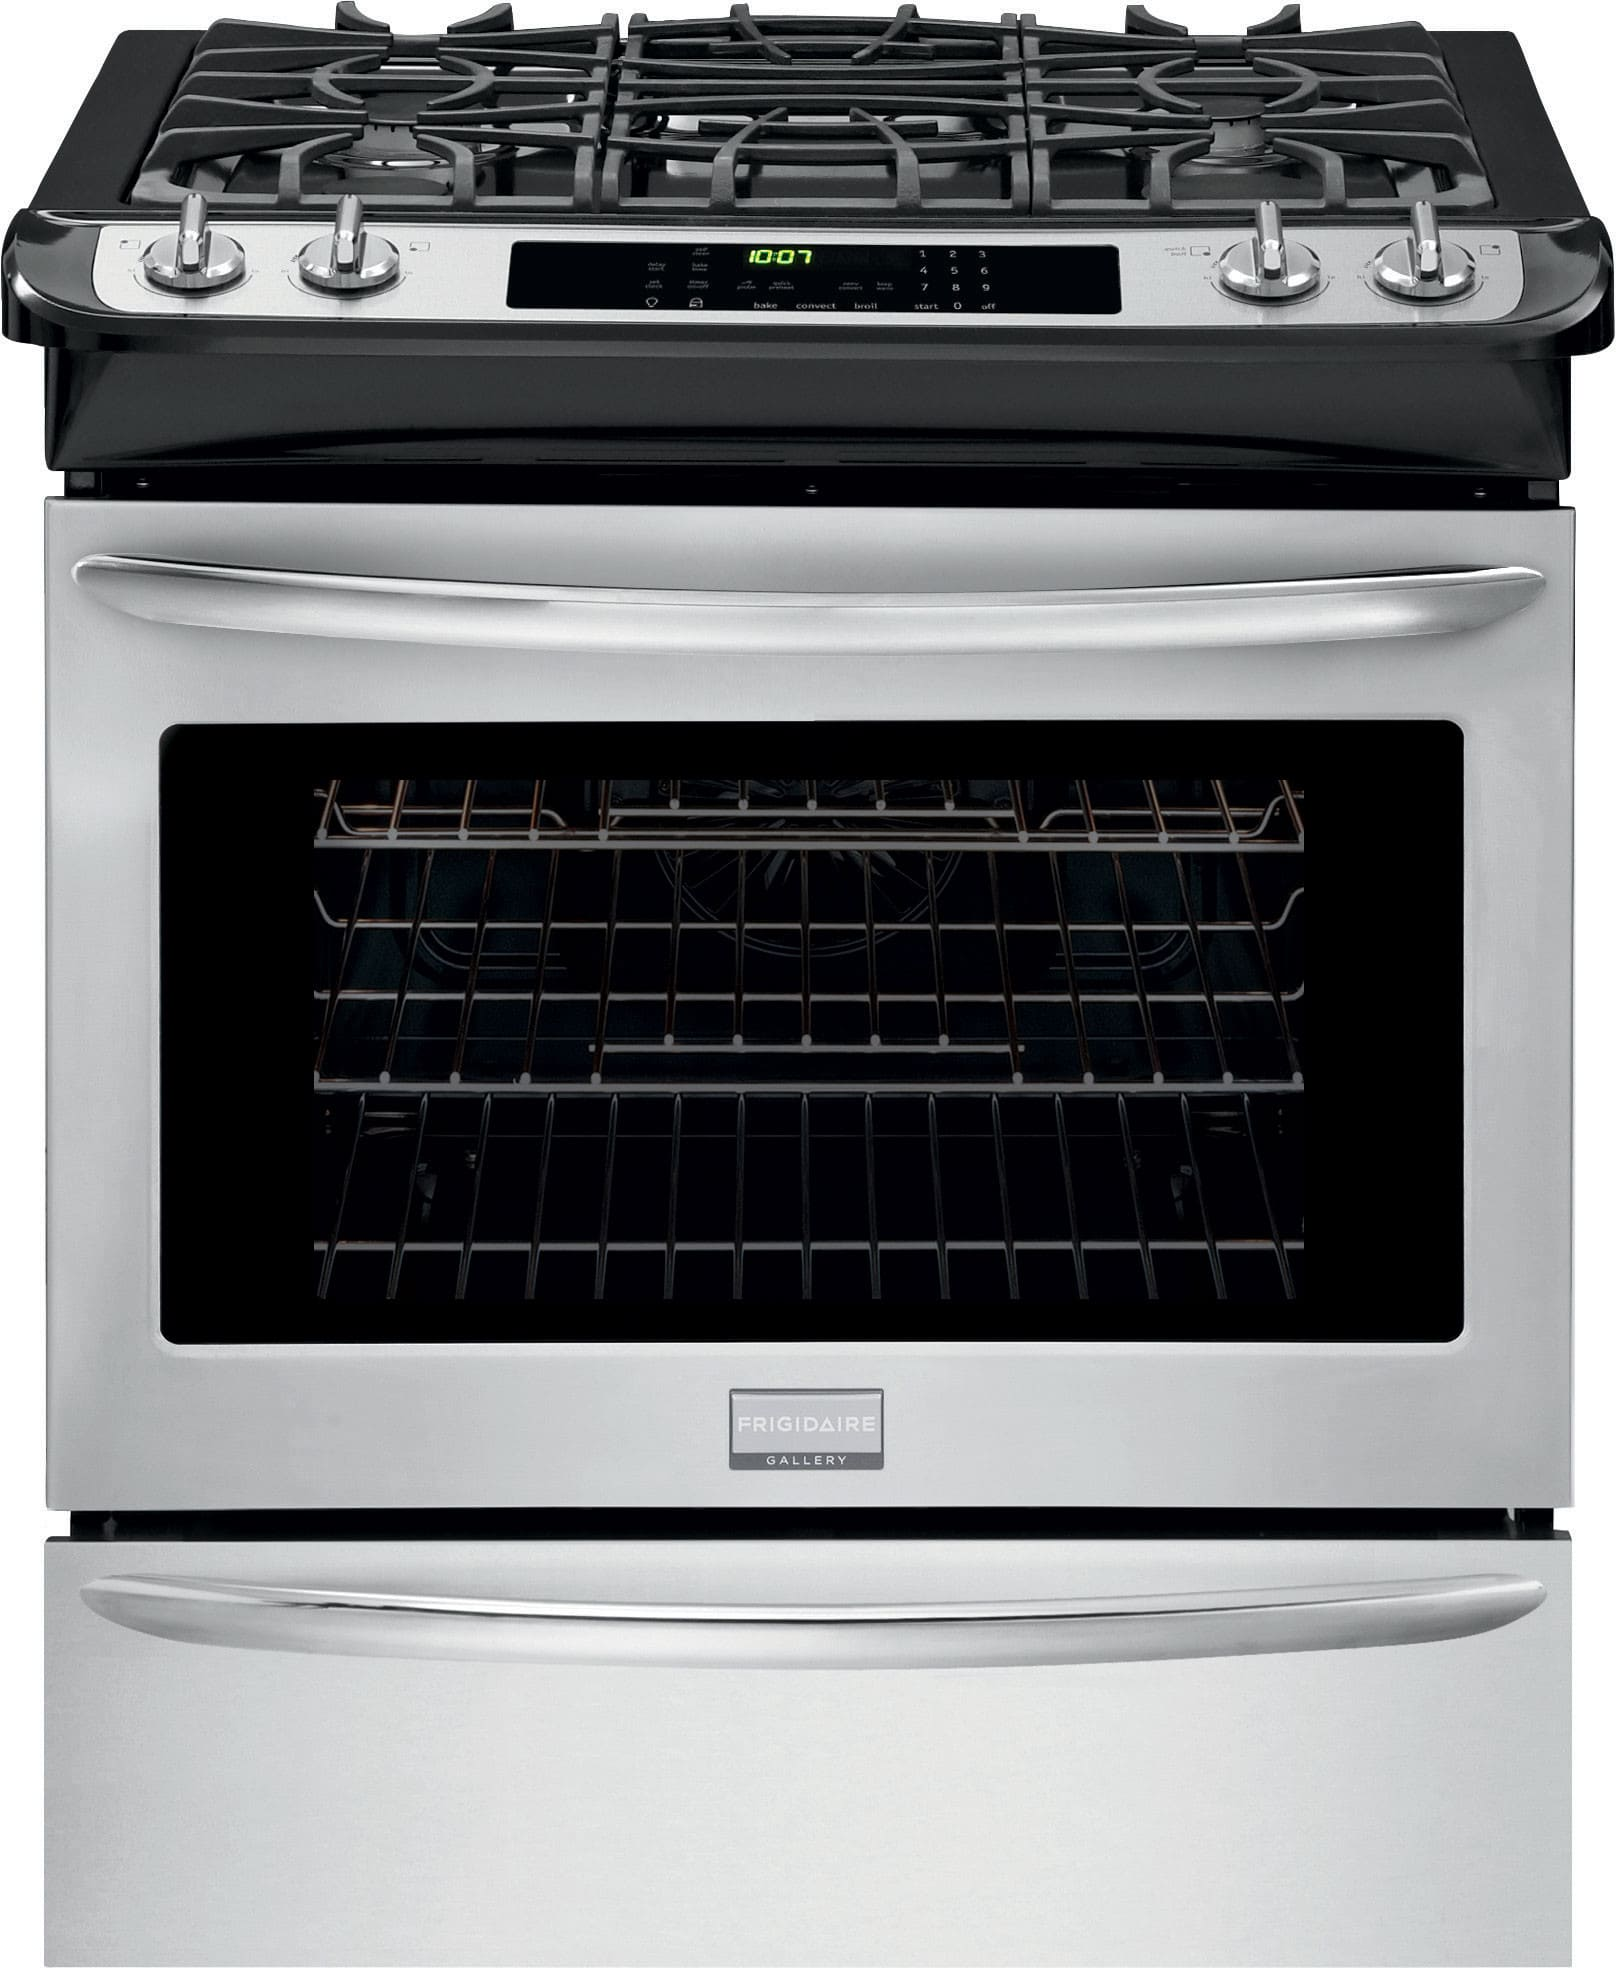 Frigidaire Fggs3065pf 30 Inch Slide In Gas Range With True Convection Quick Preheat Self Clean One Touch Keep Warm Setting Continuous Grates